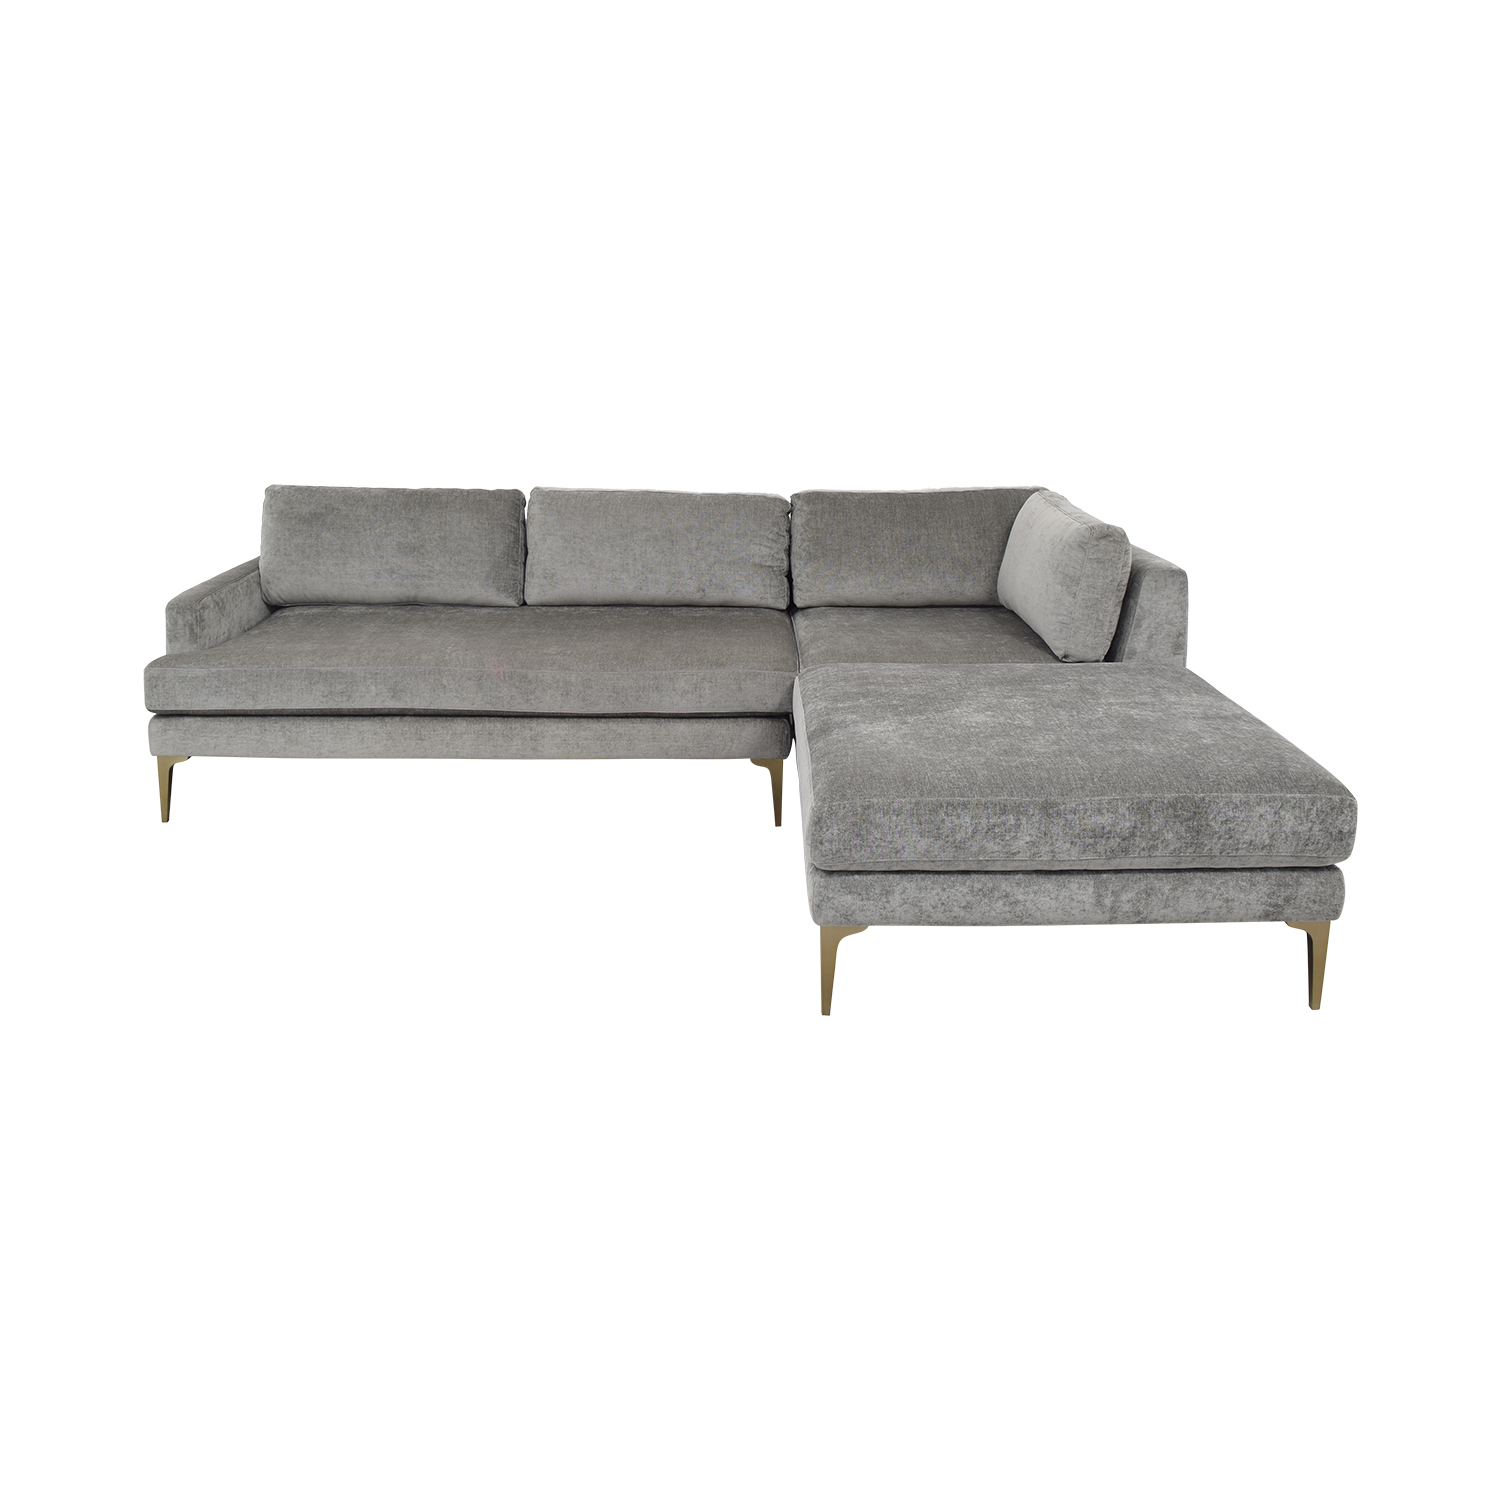 Cool 36 Off West Elm West Elm Andes Chaise Sectional Sofa Sofas Alphanode Cool Chair Designs And Ideas Alphanodeonline